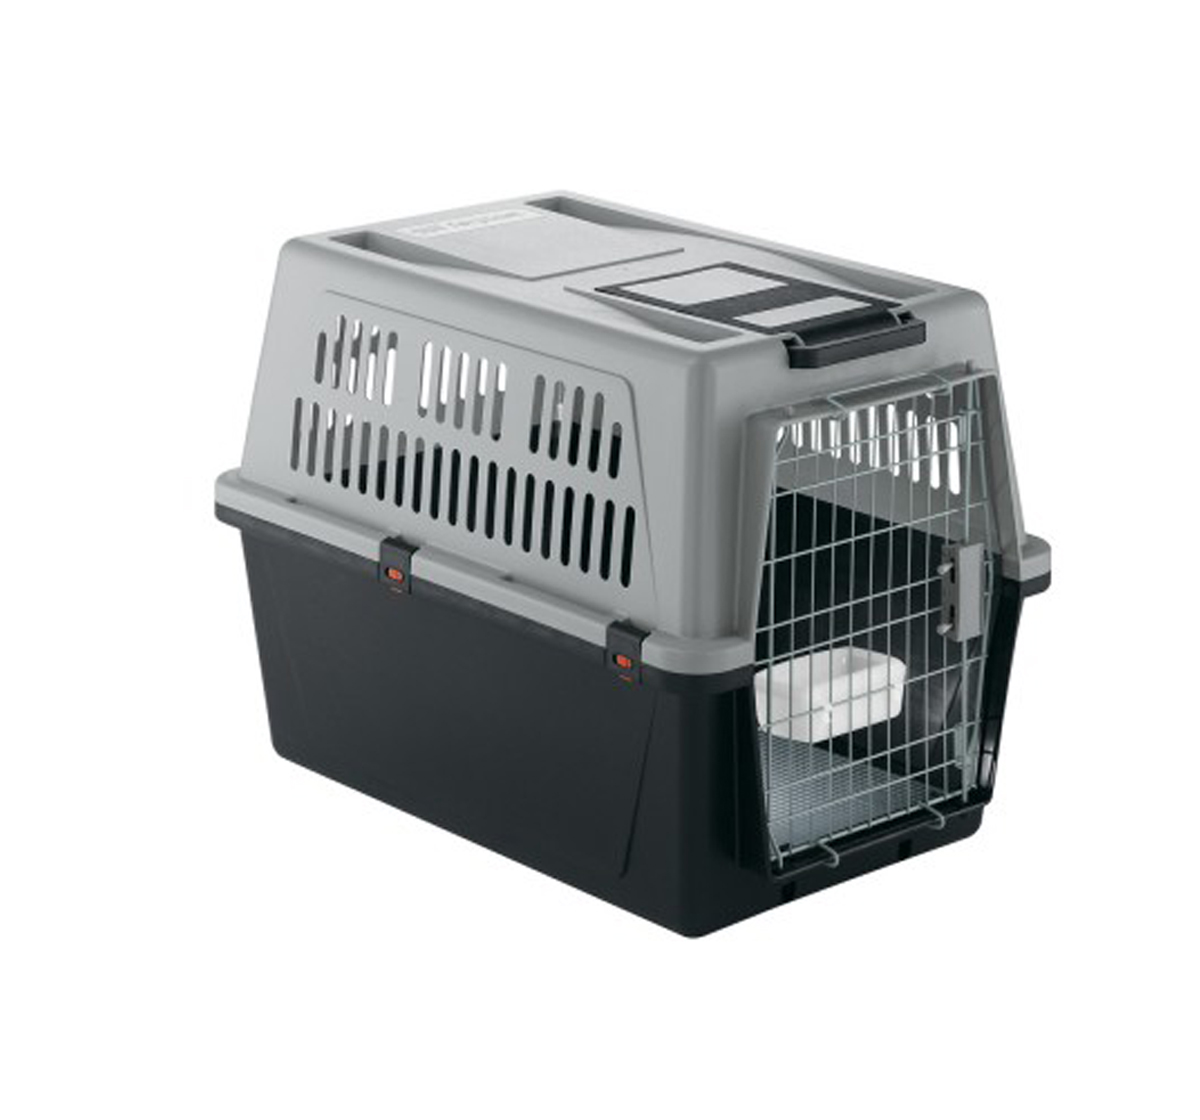 Ferplast Carrier For X Large Dogs Cats Atlas 70 Lxwxh